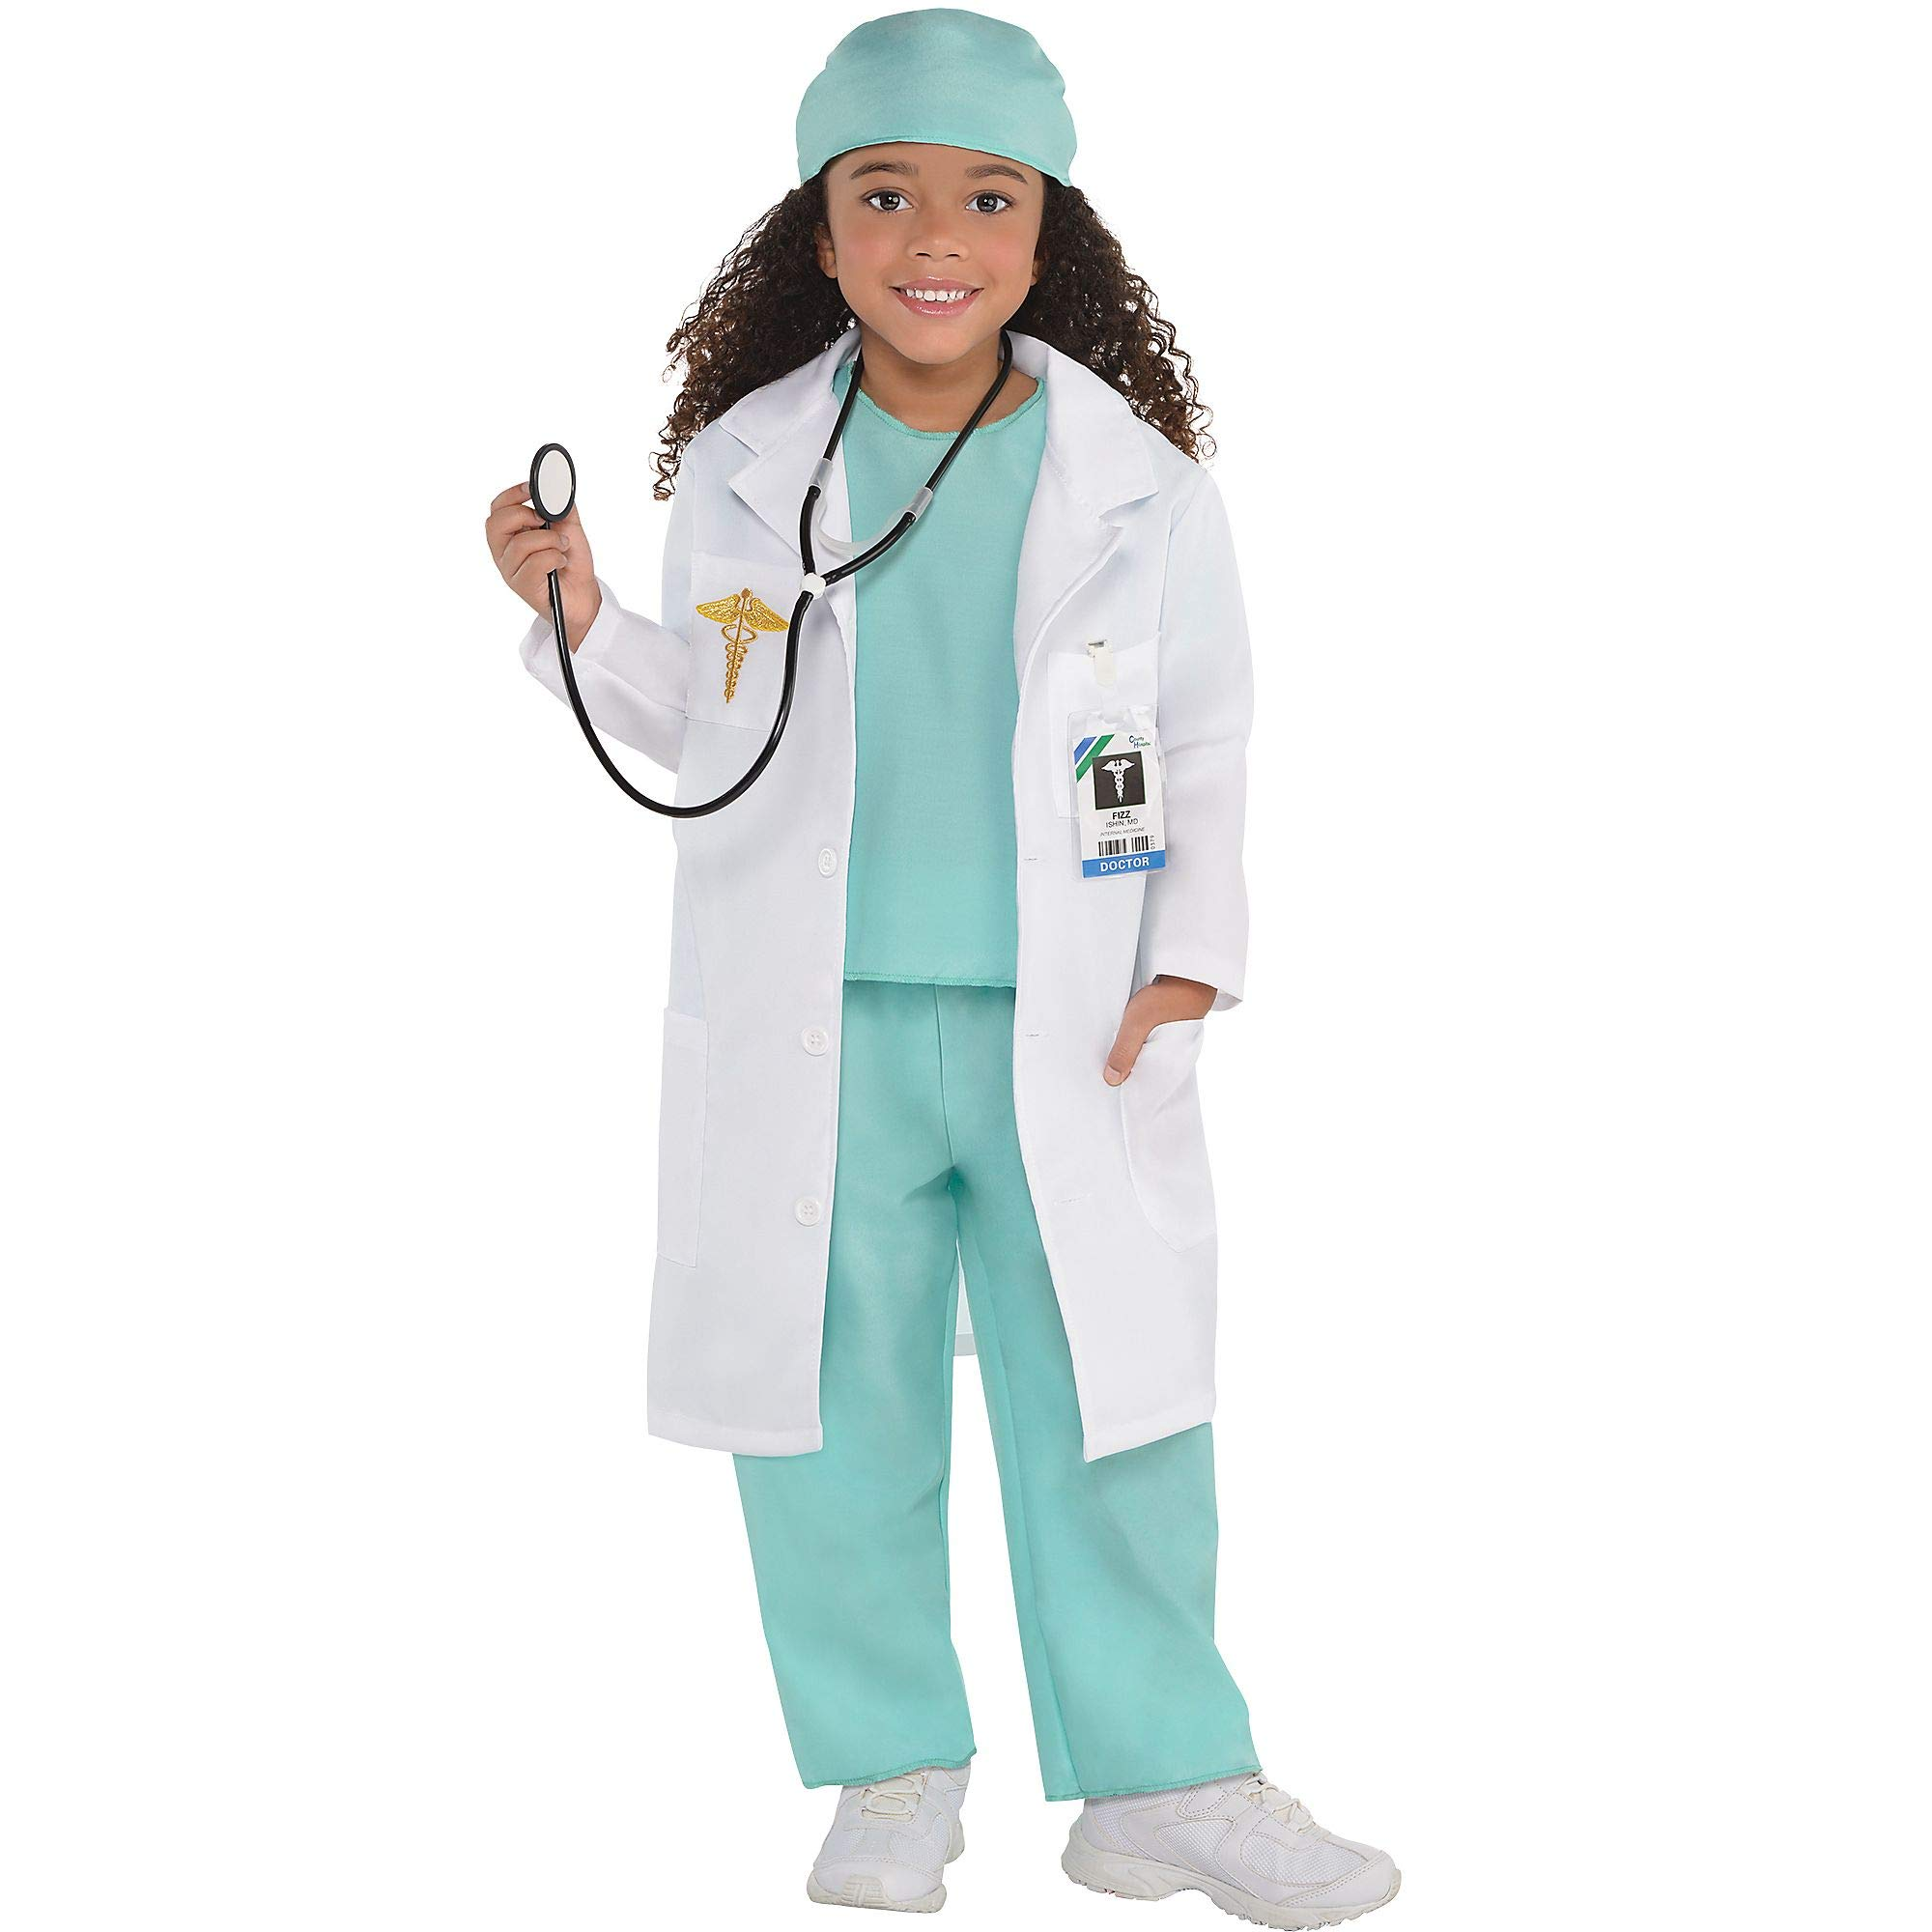 Doctors Fancy Dress Stethoscope Doctor Surgeon Nurse Medical New by Smiffys